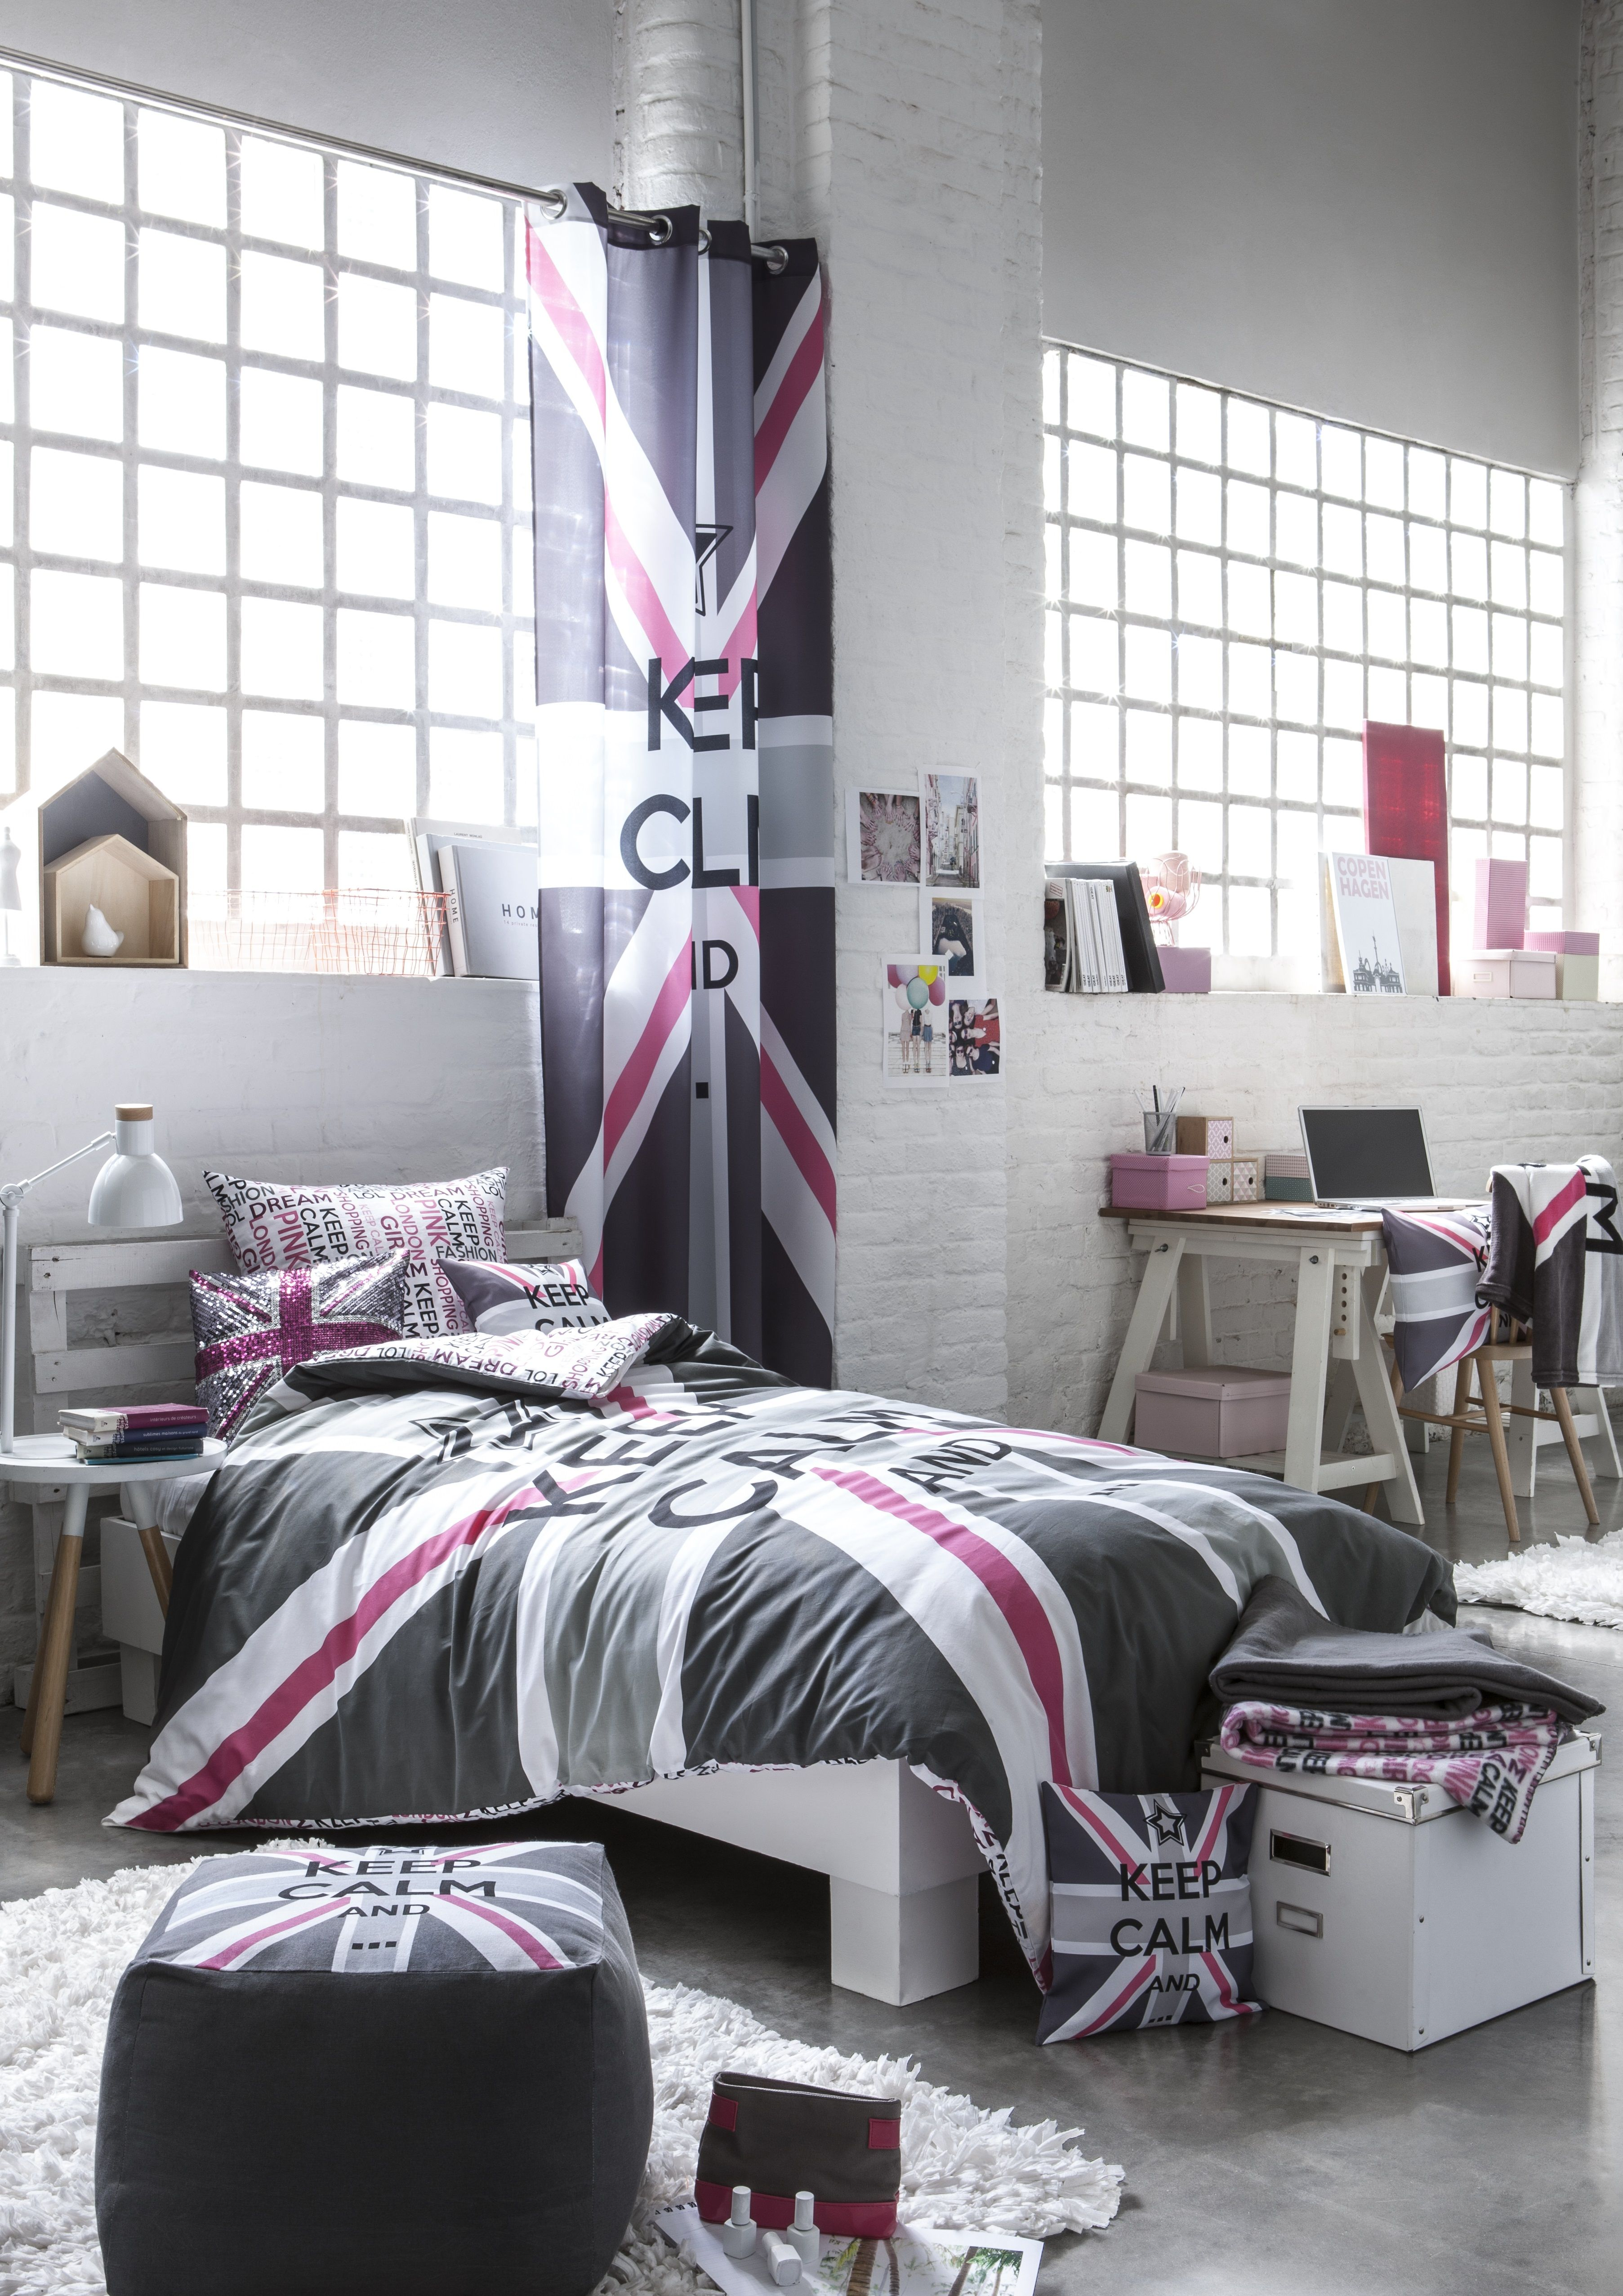 une ligne de produits keep calm l 39 image du drapeau anglais pour un int rieur maison. Black Bedroom Furniture Sets. Home Design Ideas